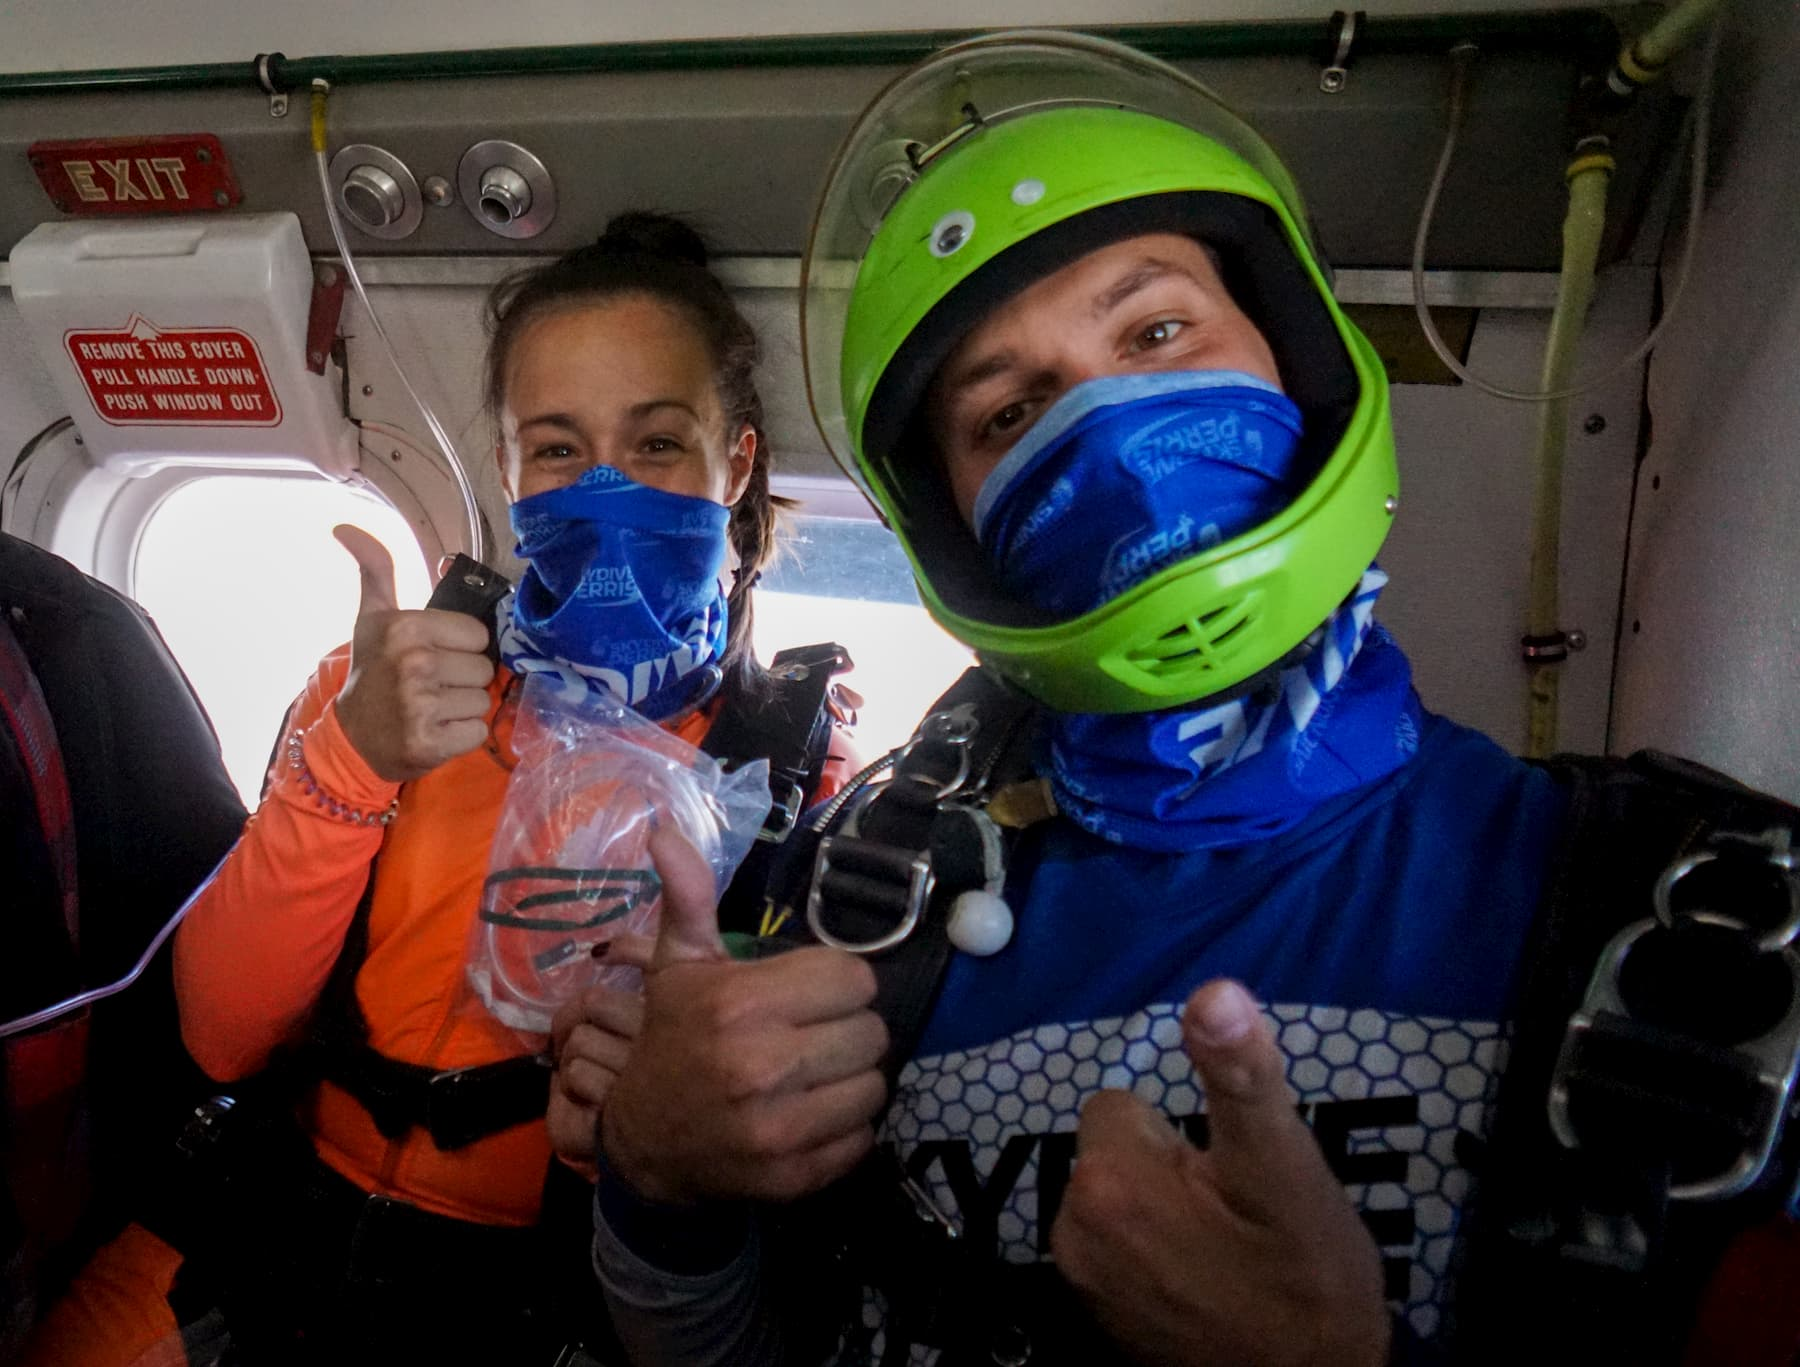 Two skydivers prepare for a jump.